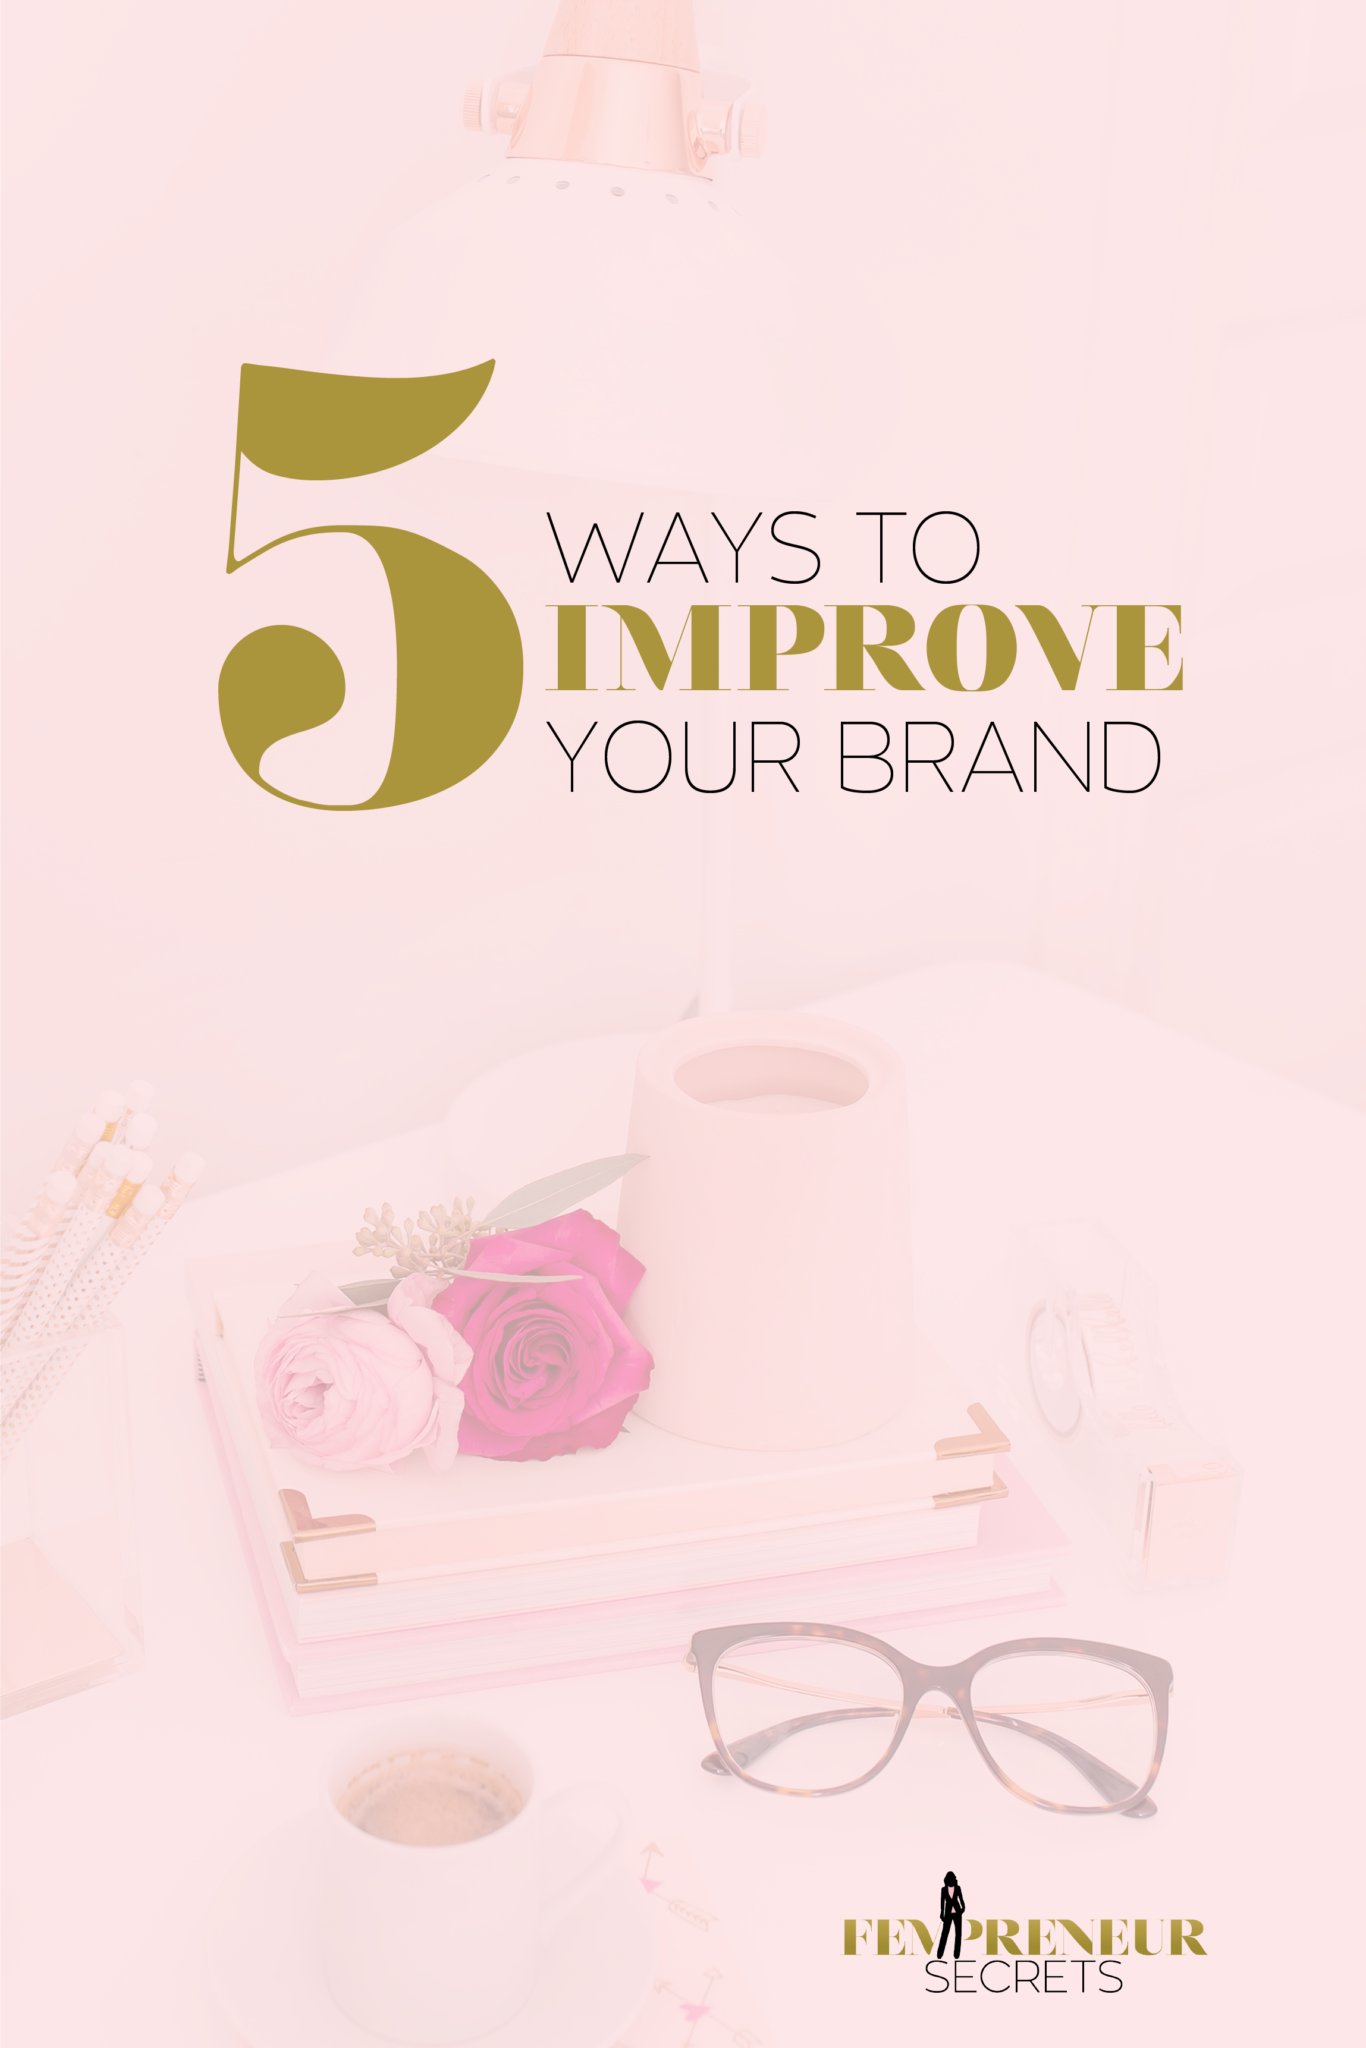 001-5-Ways-to-Improve-Your-Brand_Pinterest-2.png